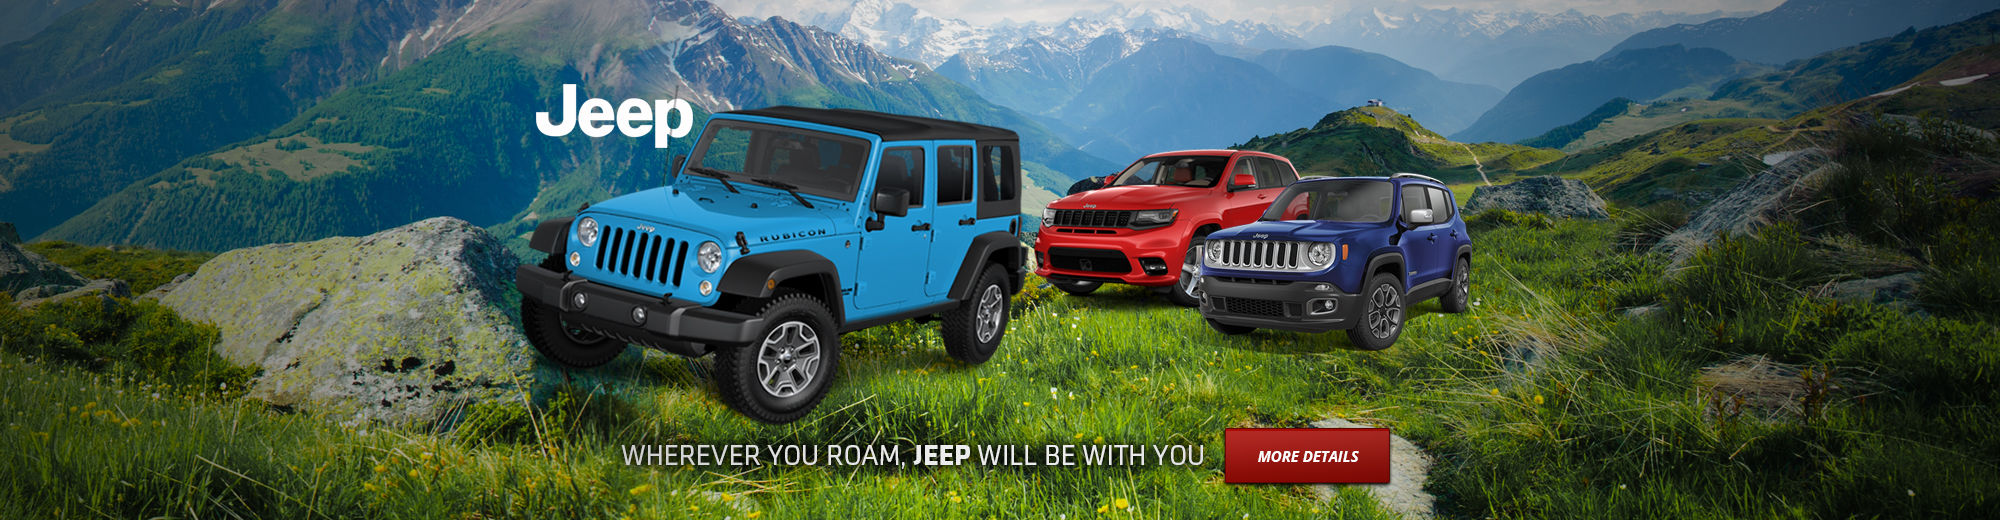 Wherever you roam, JEEP will be with you